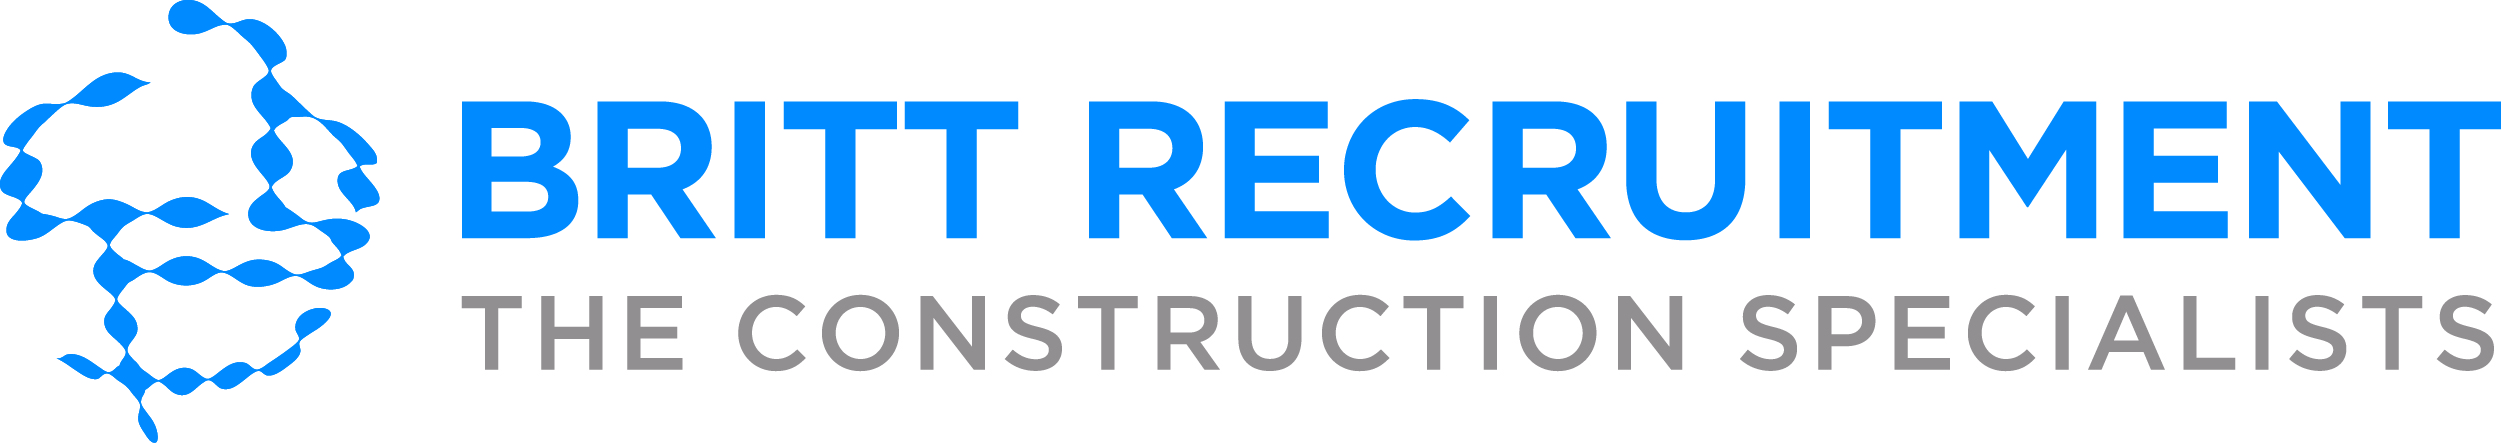 Building Development & Contracting Recruitment